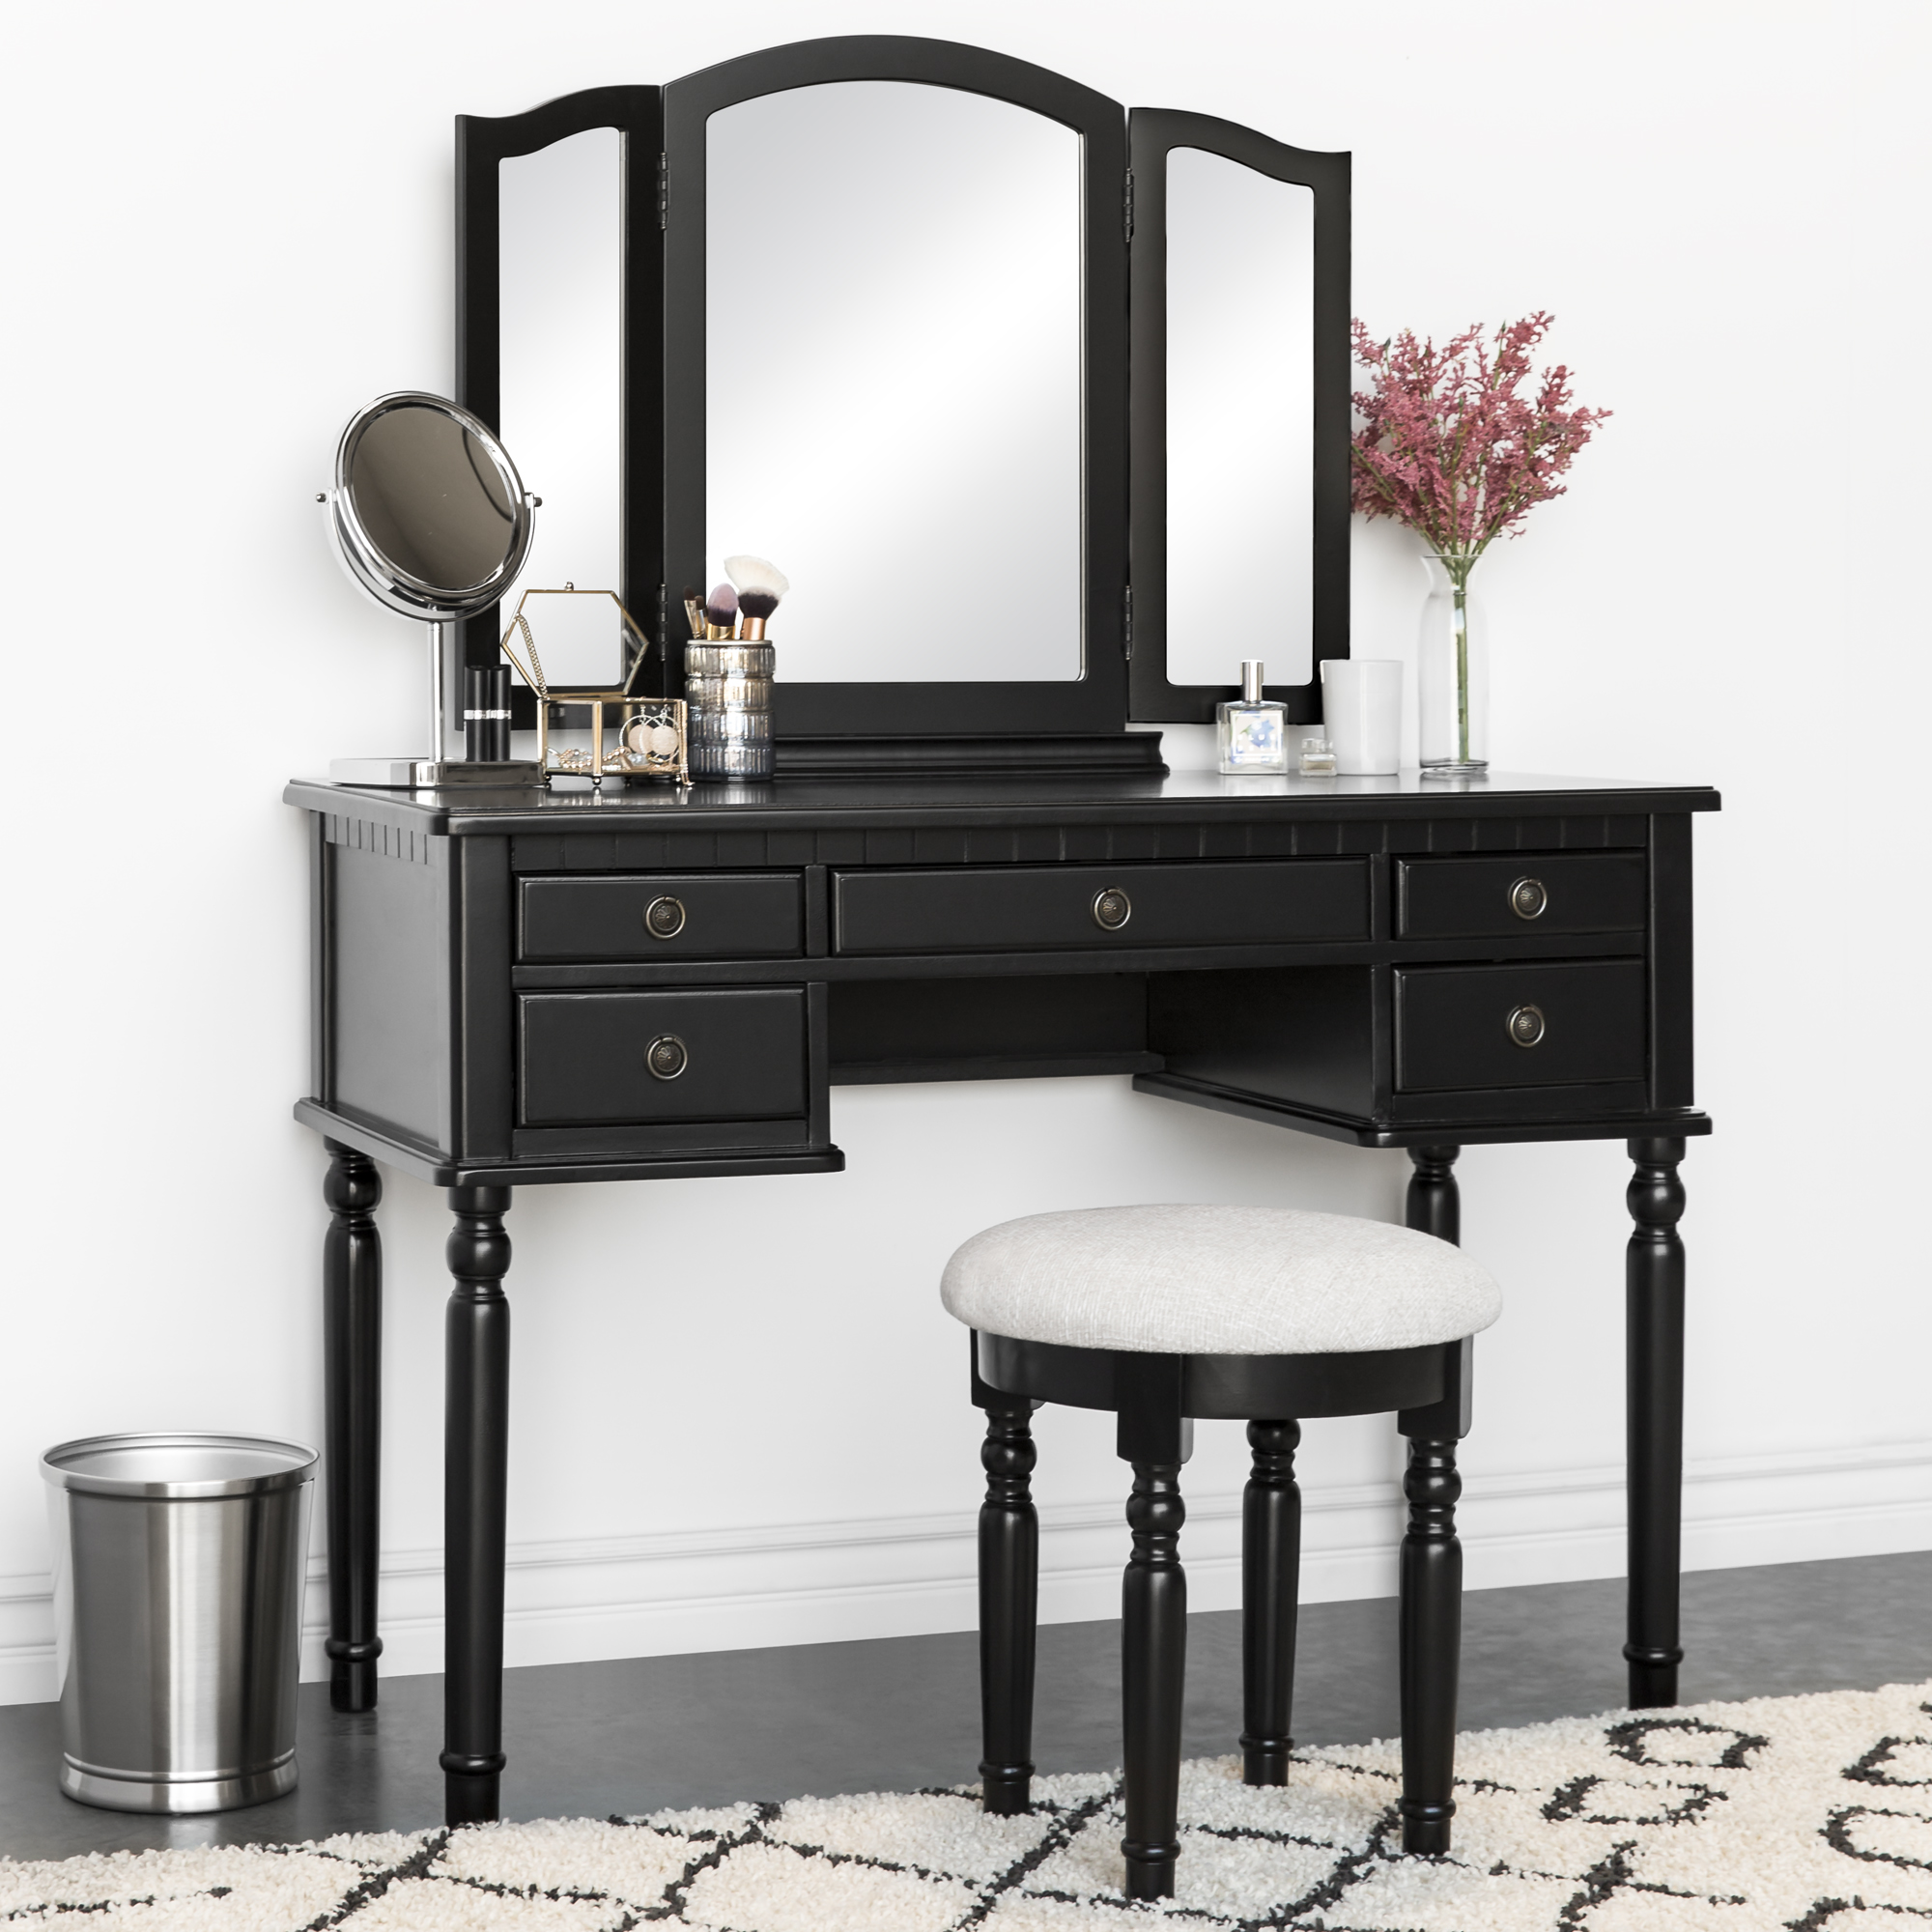 Best Choice Products Makeup Cosmetic Beauty Vanity Dressing Table Set w/ Tri-Fold Mirror, Stool Seat, 5 Drawers - Black